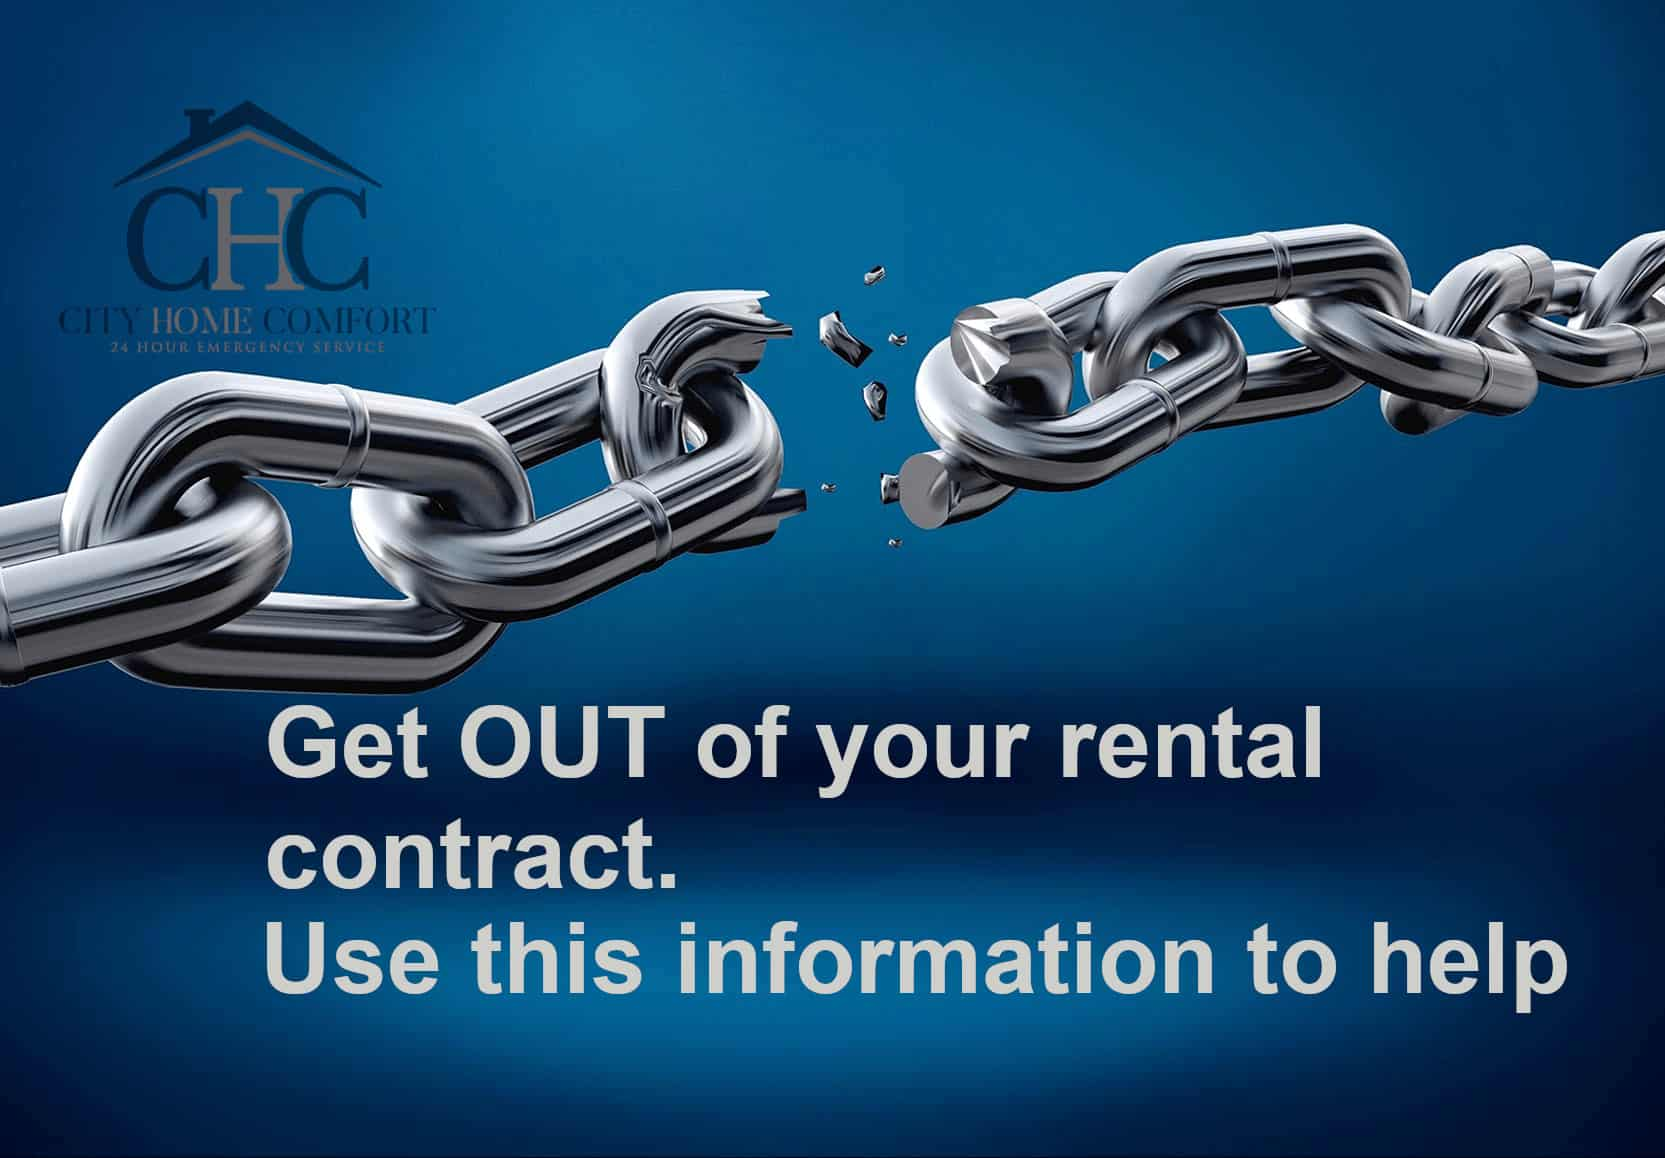 Cancel your rental water heater contract.